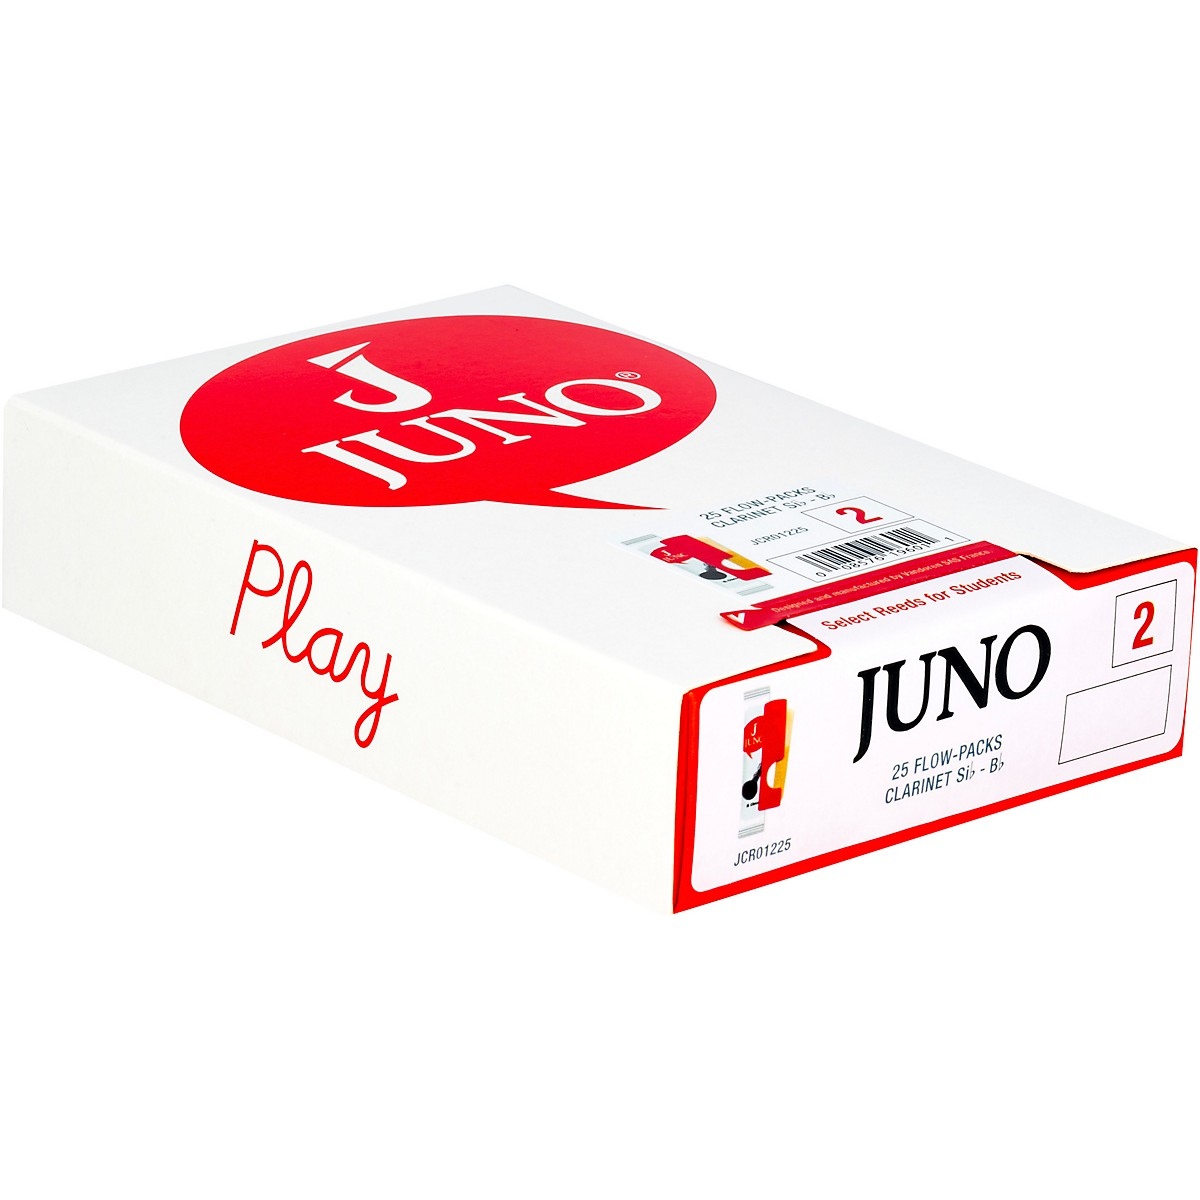 Vandoren JUNO Bb Clarinet, Box of 25 Reeds